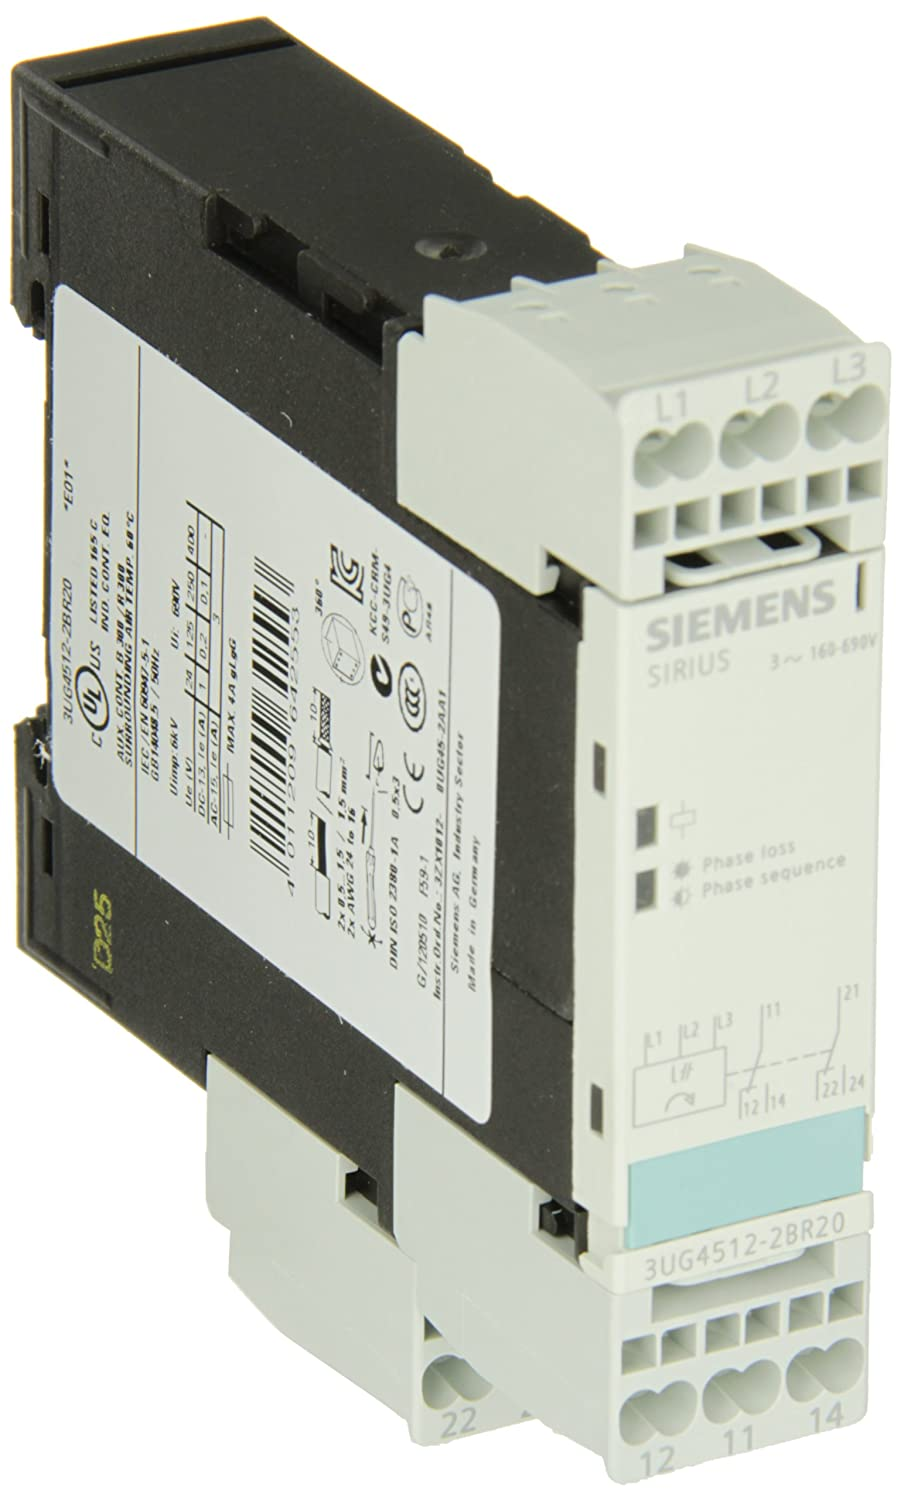 2 CO Contacts Cage Clamp Terminal Siemens 3UG4512-2BR20 Monitoring Relay 160-690 Line Supply Voltage 3UG45122BR20 Delay Time Insulation Monitoring Three Phase Voltage 22.5mm Width